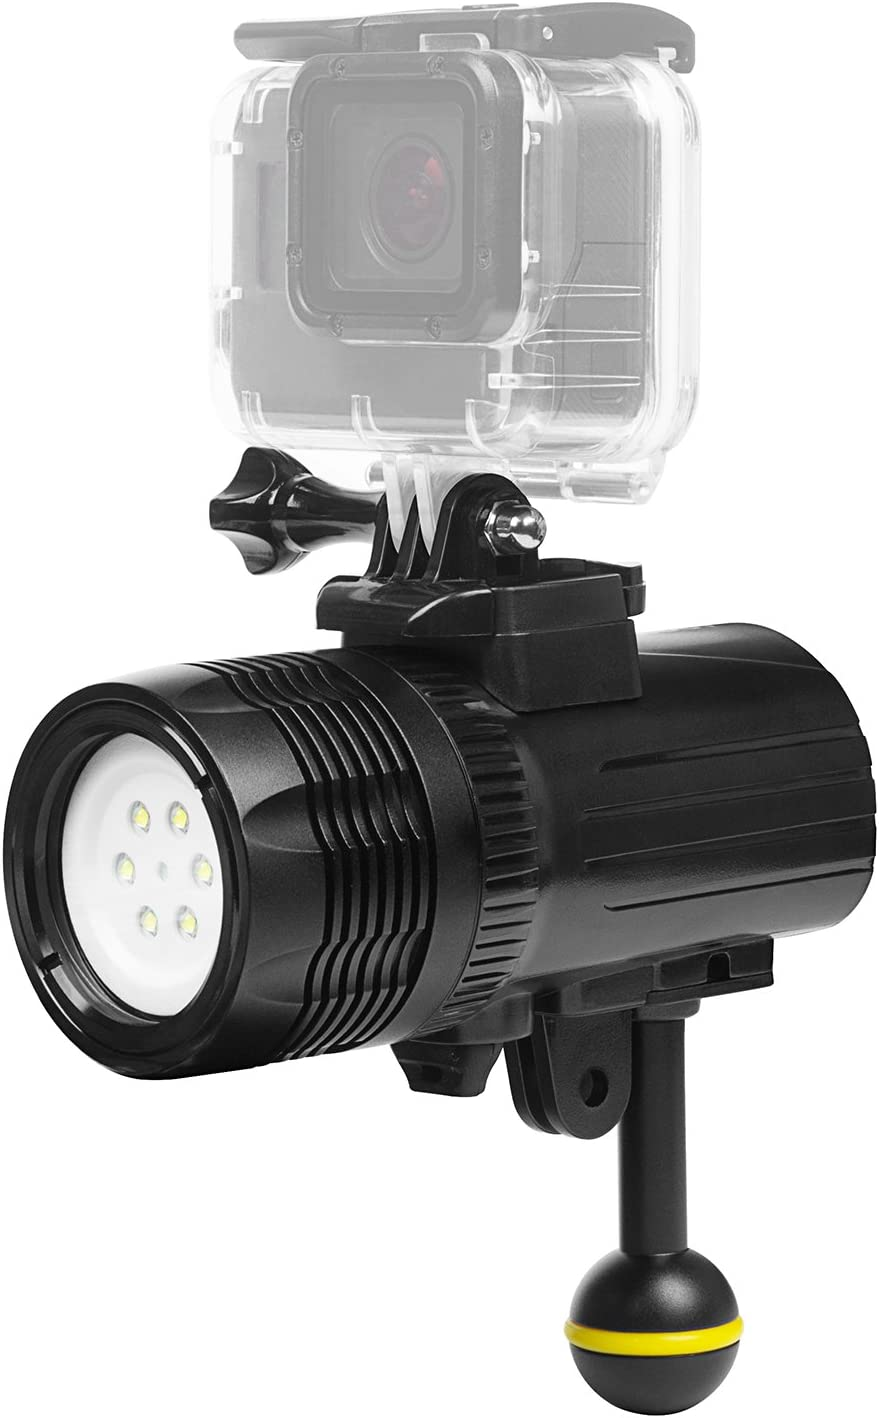 SHOOT Handheld Pro Diving Flashlights Torch for Osmo Action Camera GoPro Hero 8//7//6//5//4//3+//3 1000LM,Waterproof 60m,CREE XM-L R3,120/° Wide Angle,6500K Color Temperature,2000mAh Rechargeable Battery